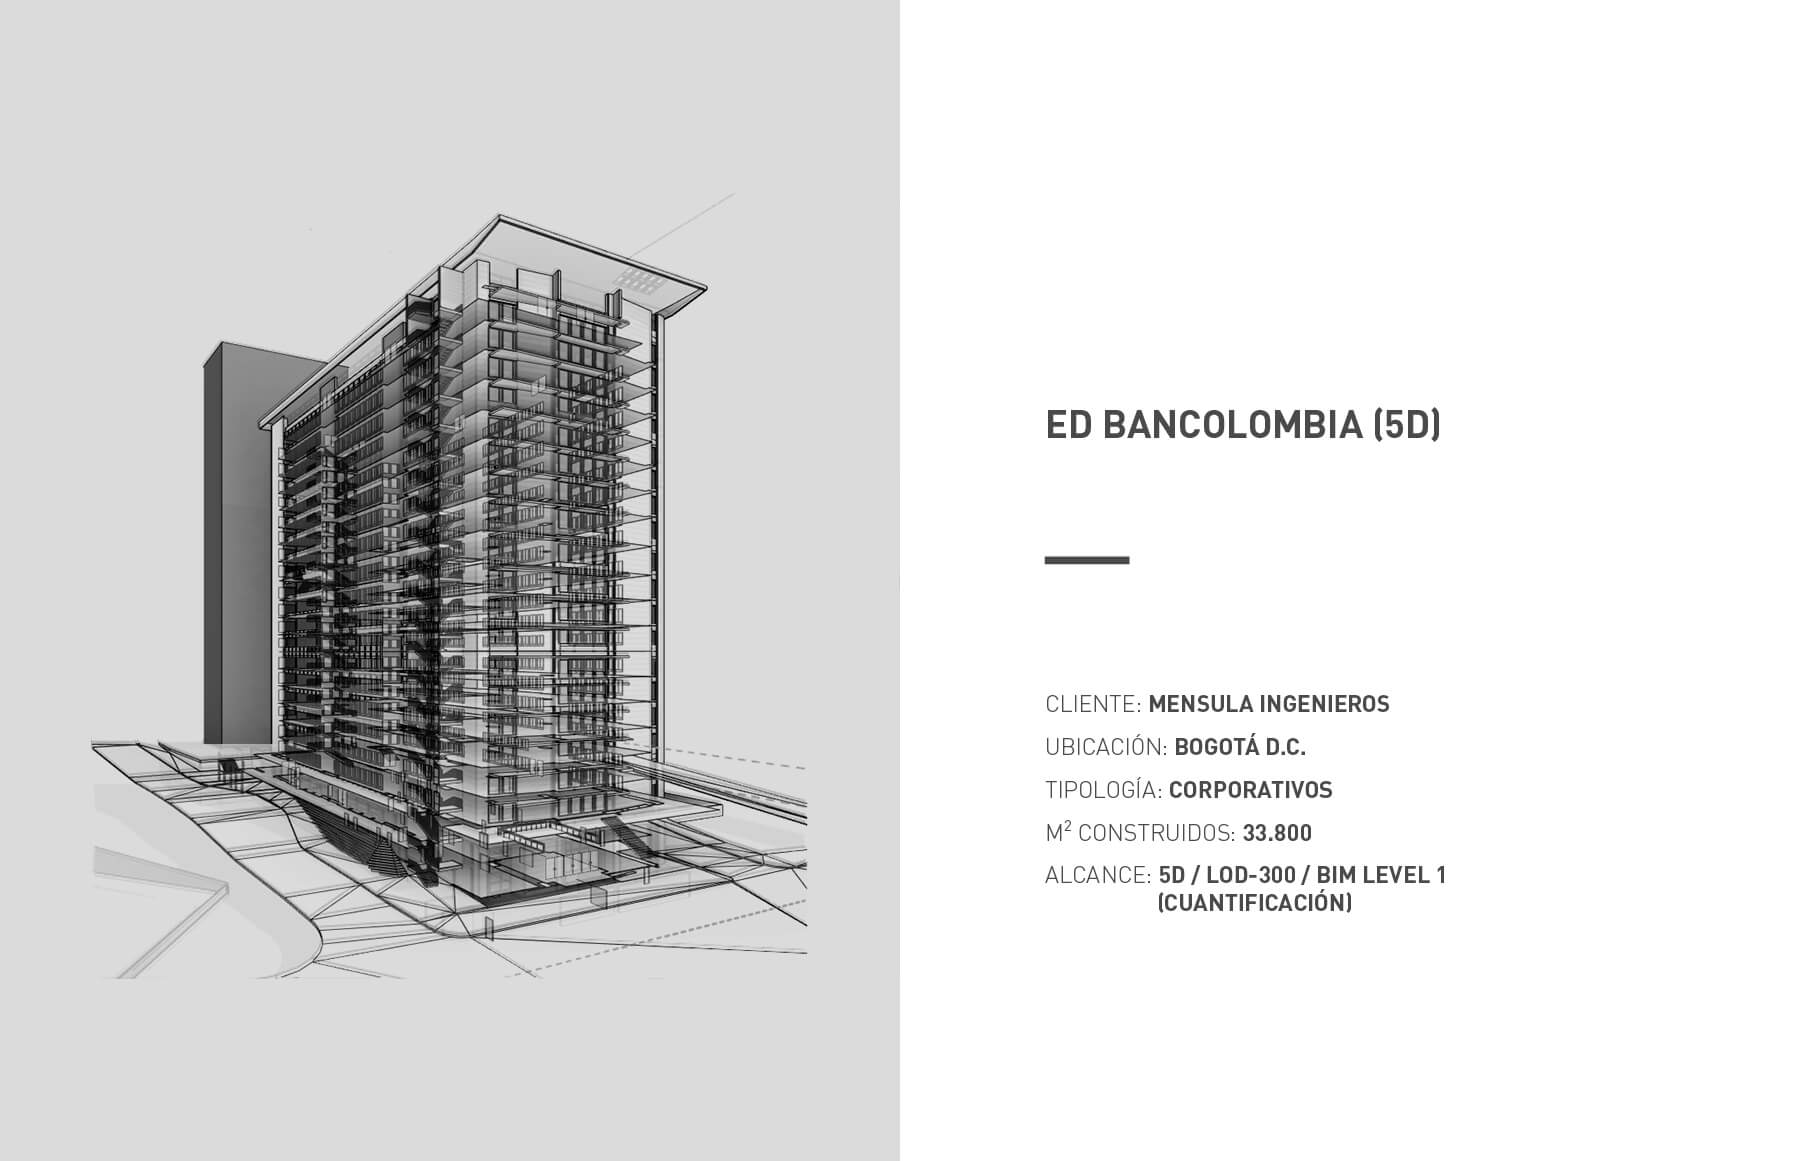 Ed. bancolombia (5D)